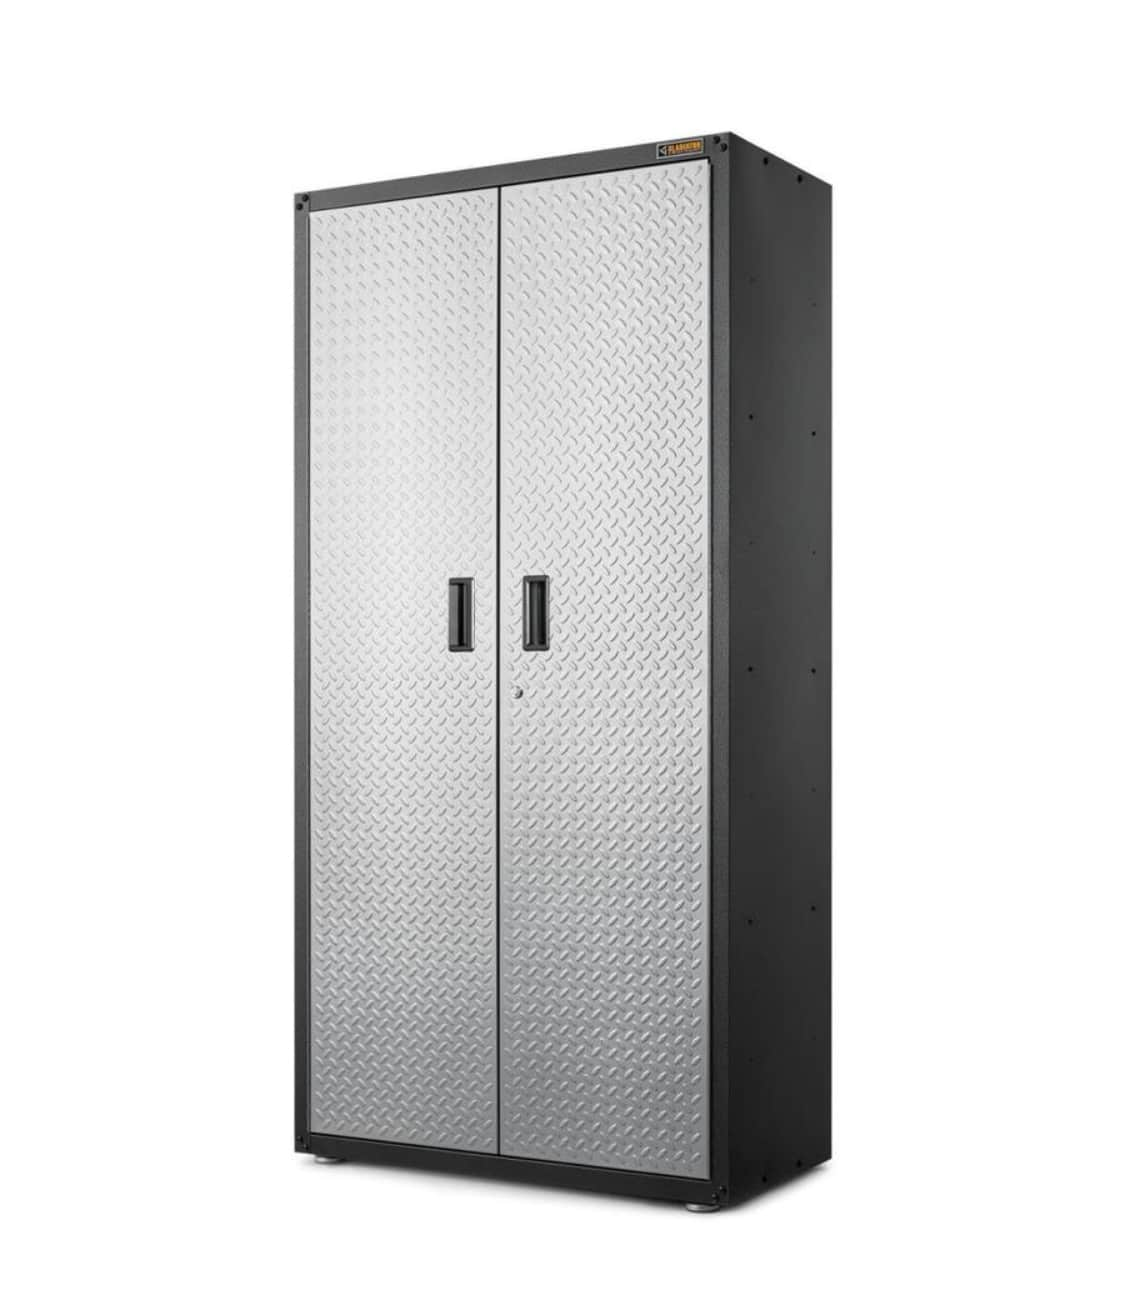 Gladiator Large (36x72x18) Gearbox Steel Garage Cabinet $179 @ Lowes